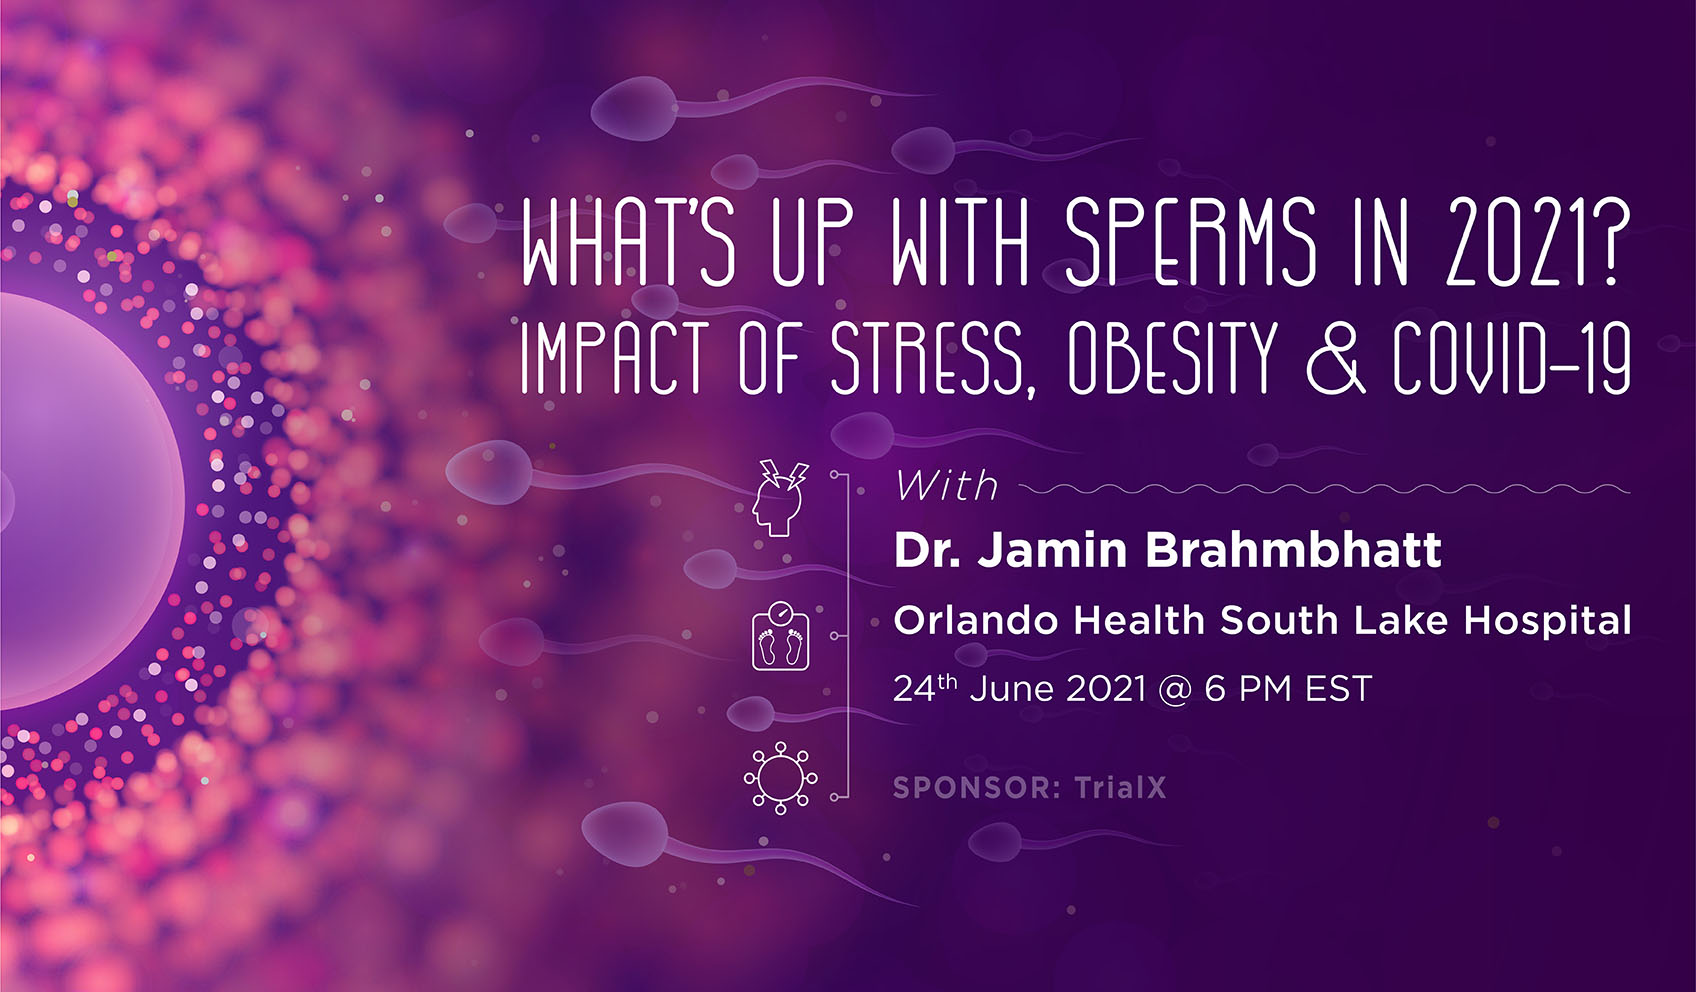 What's up with sperms in 2021? Impact of Stress, Obesity & COVID-19